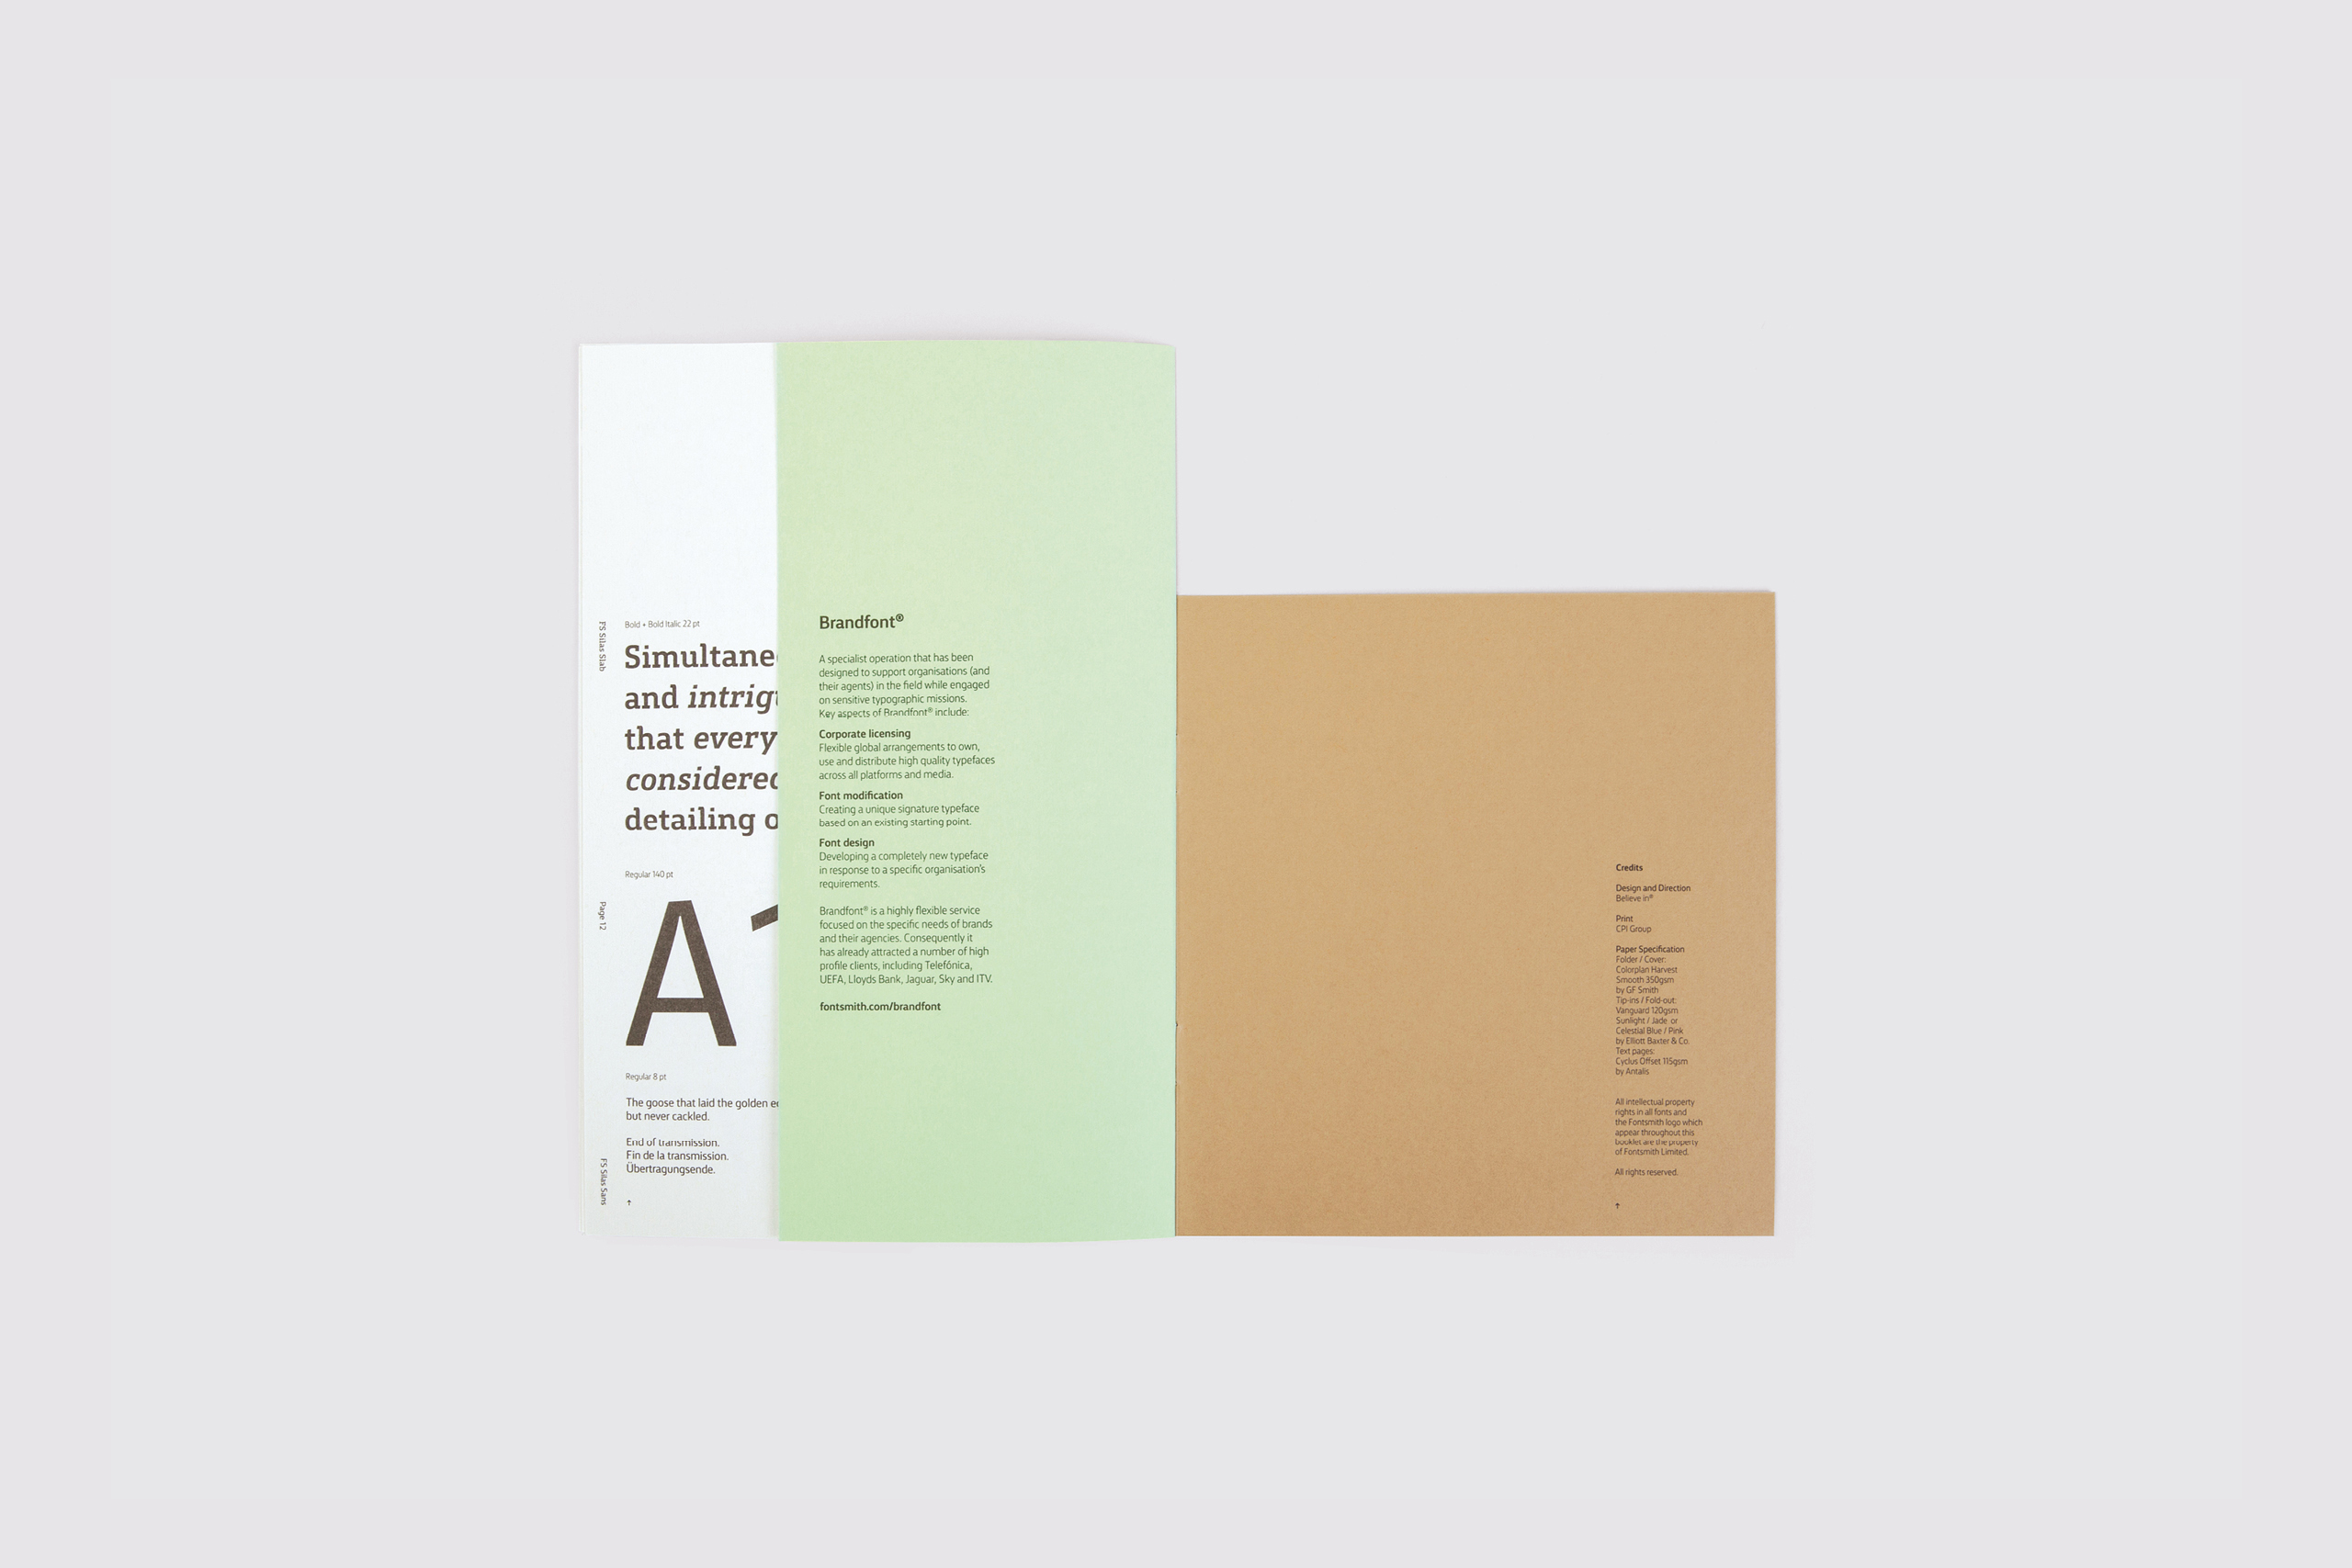 Fontsmith - FS Silas launch